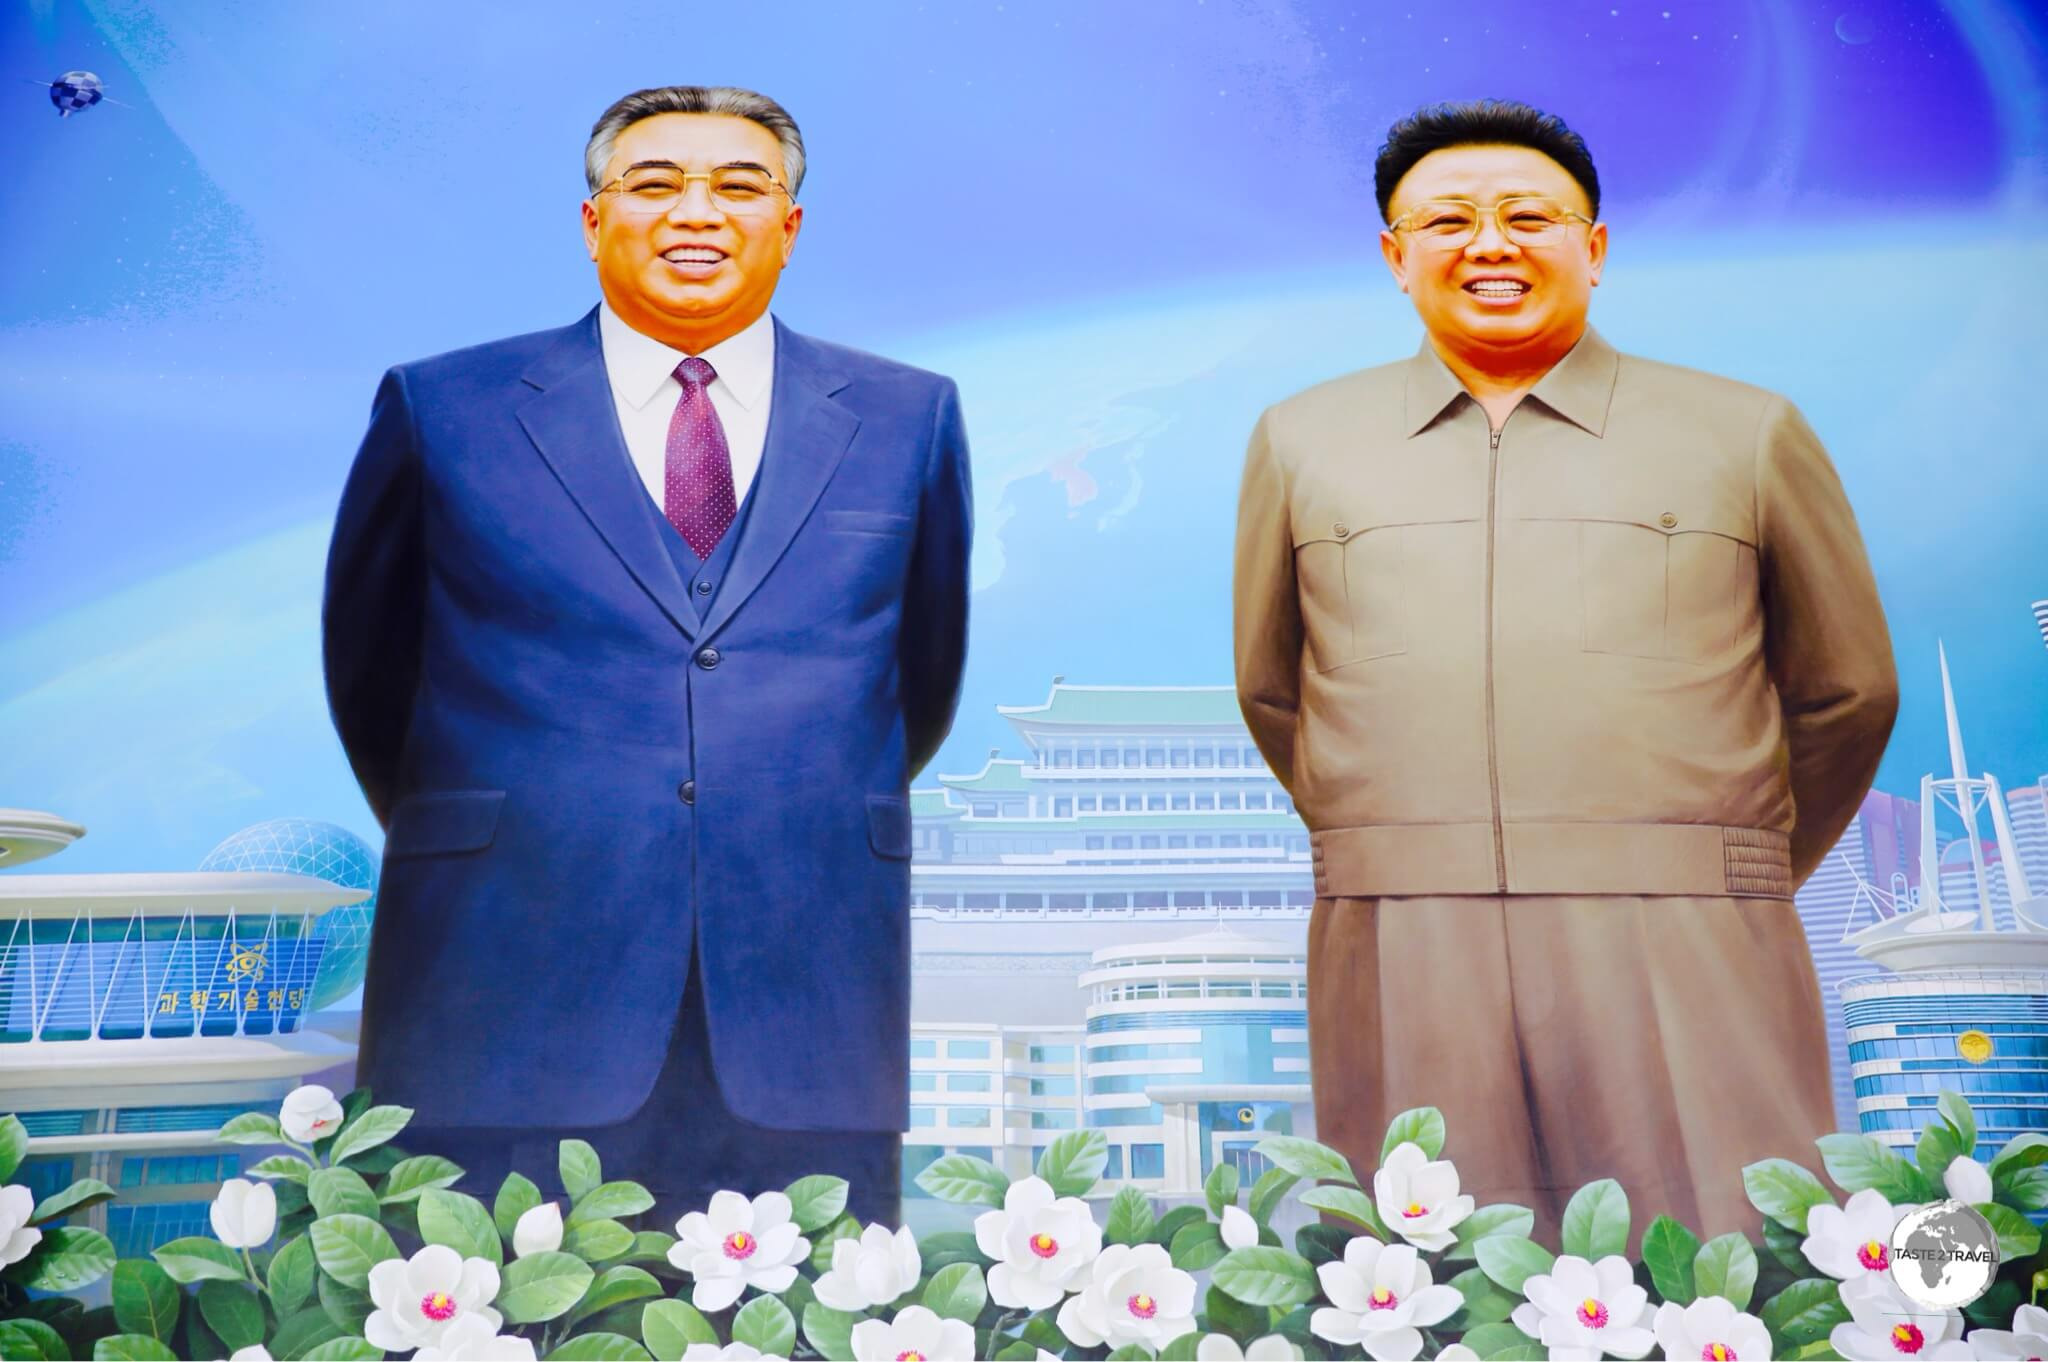 An idealised portrait of the DPRK leadership at the Science & Technology centre in Pyongyang.